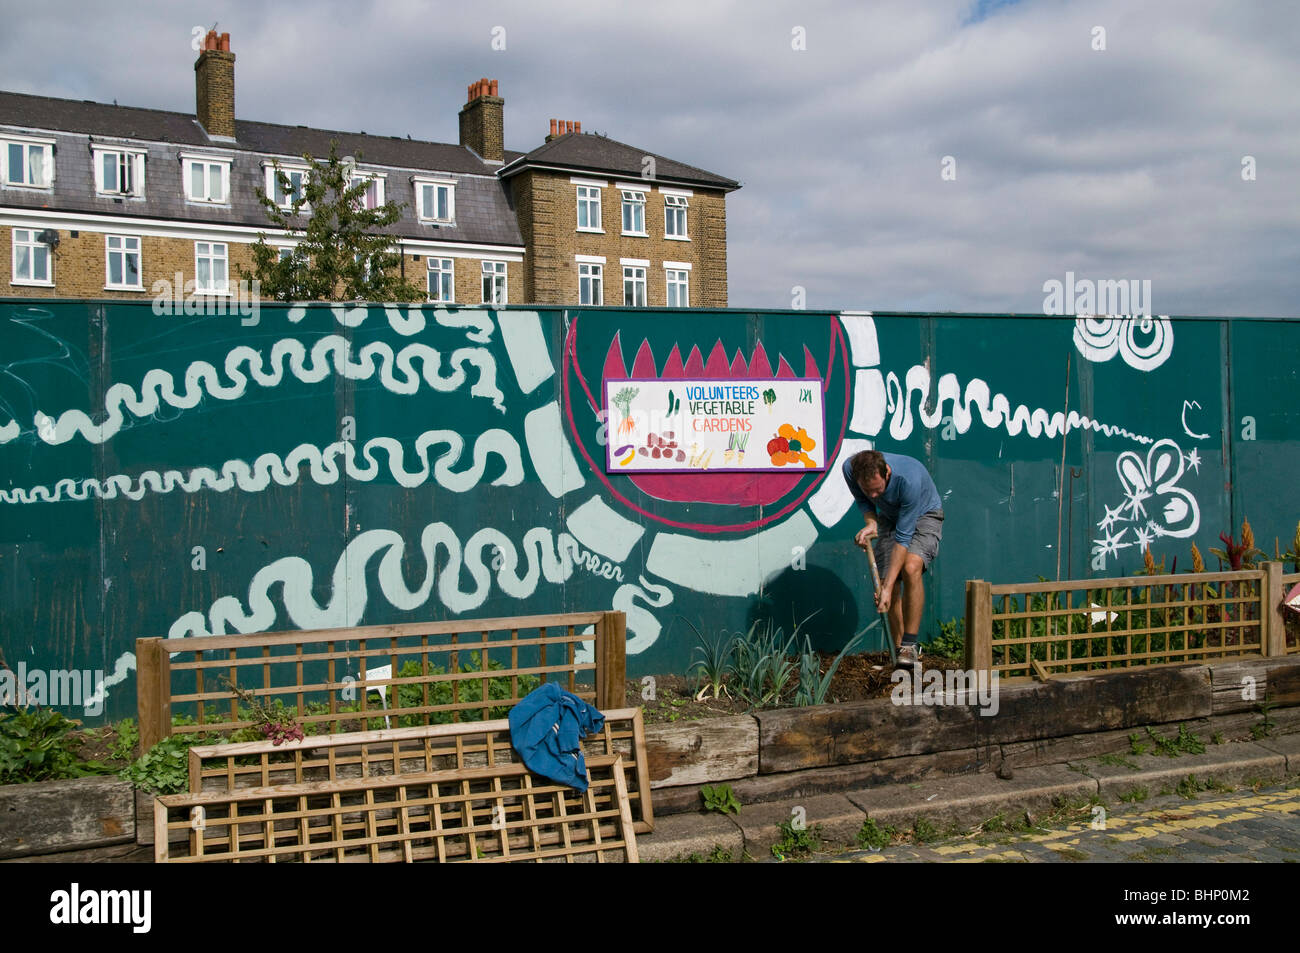 UK.Volunteer working at the vegetable allotment at Spitalfields City Farm in east London - Stock Image